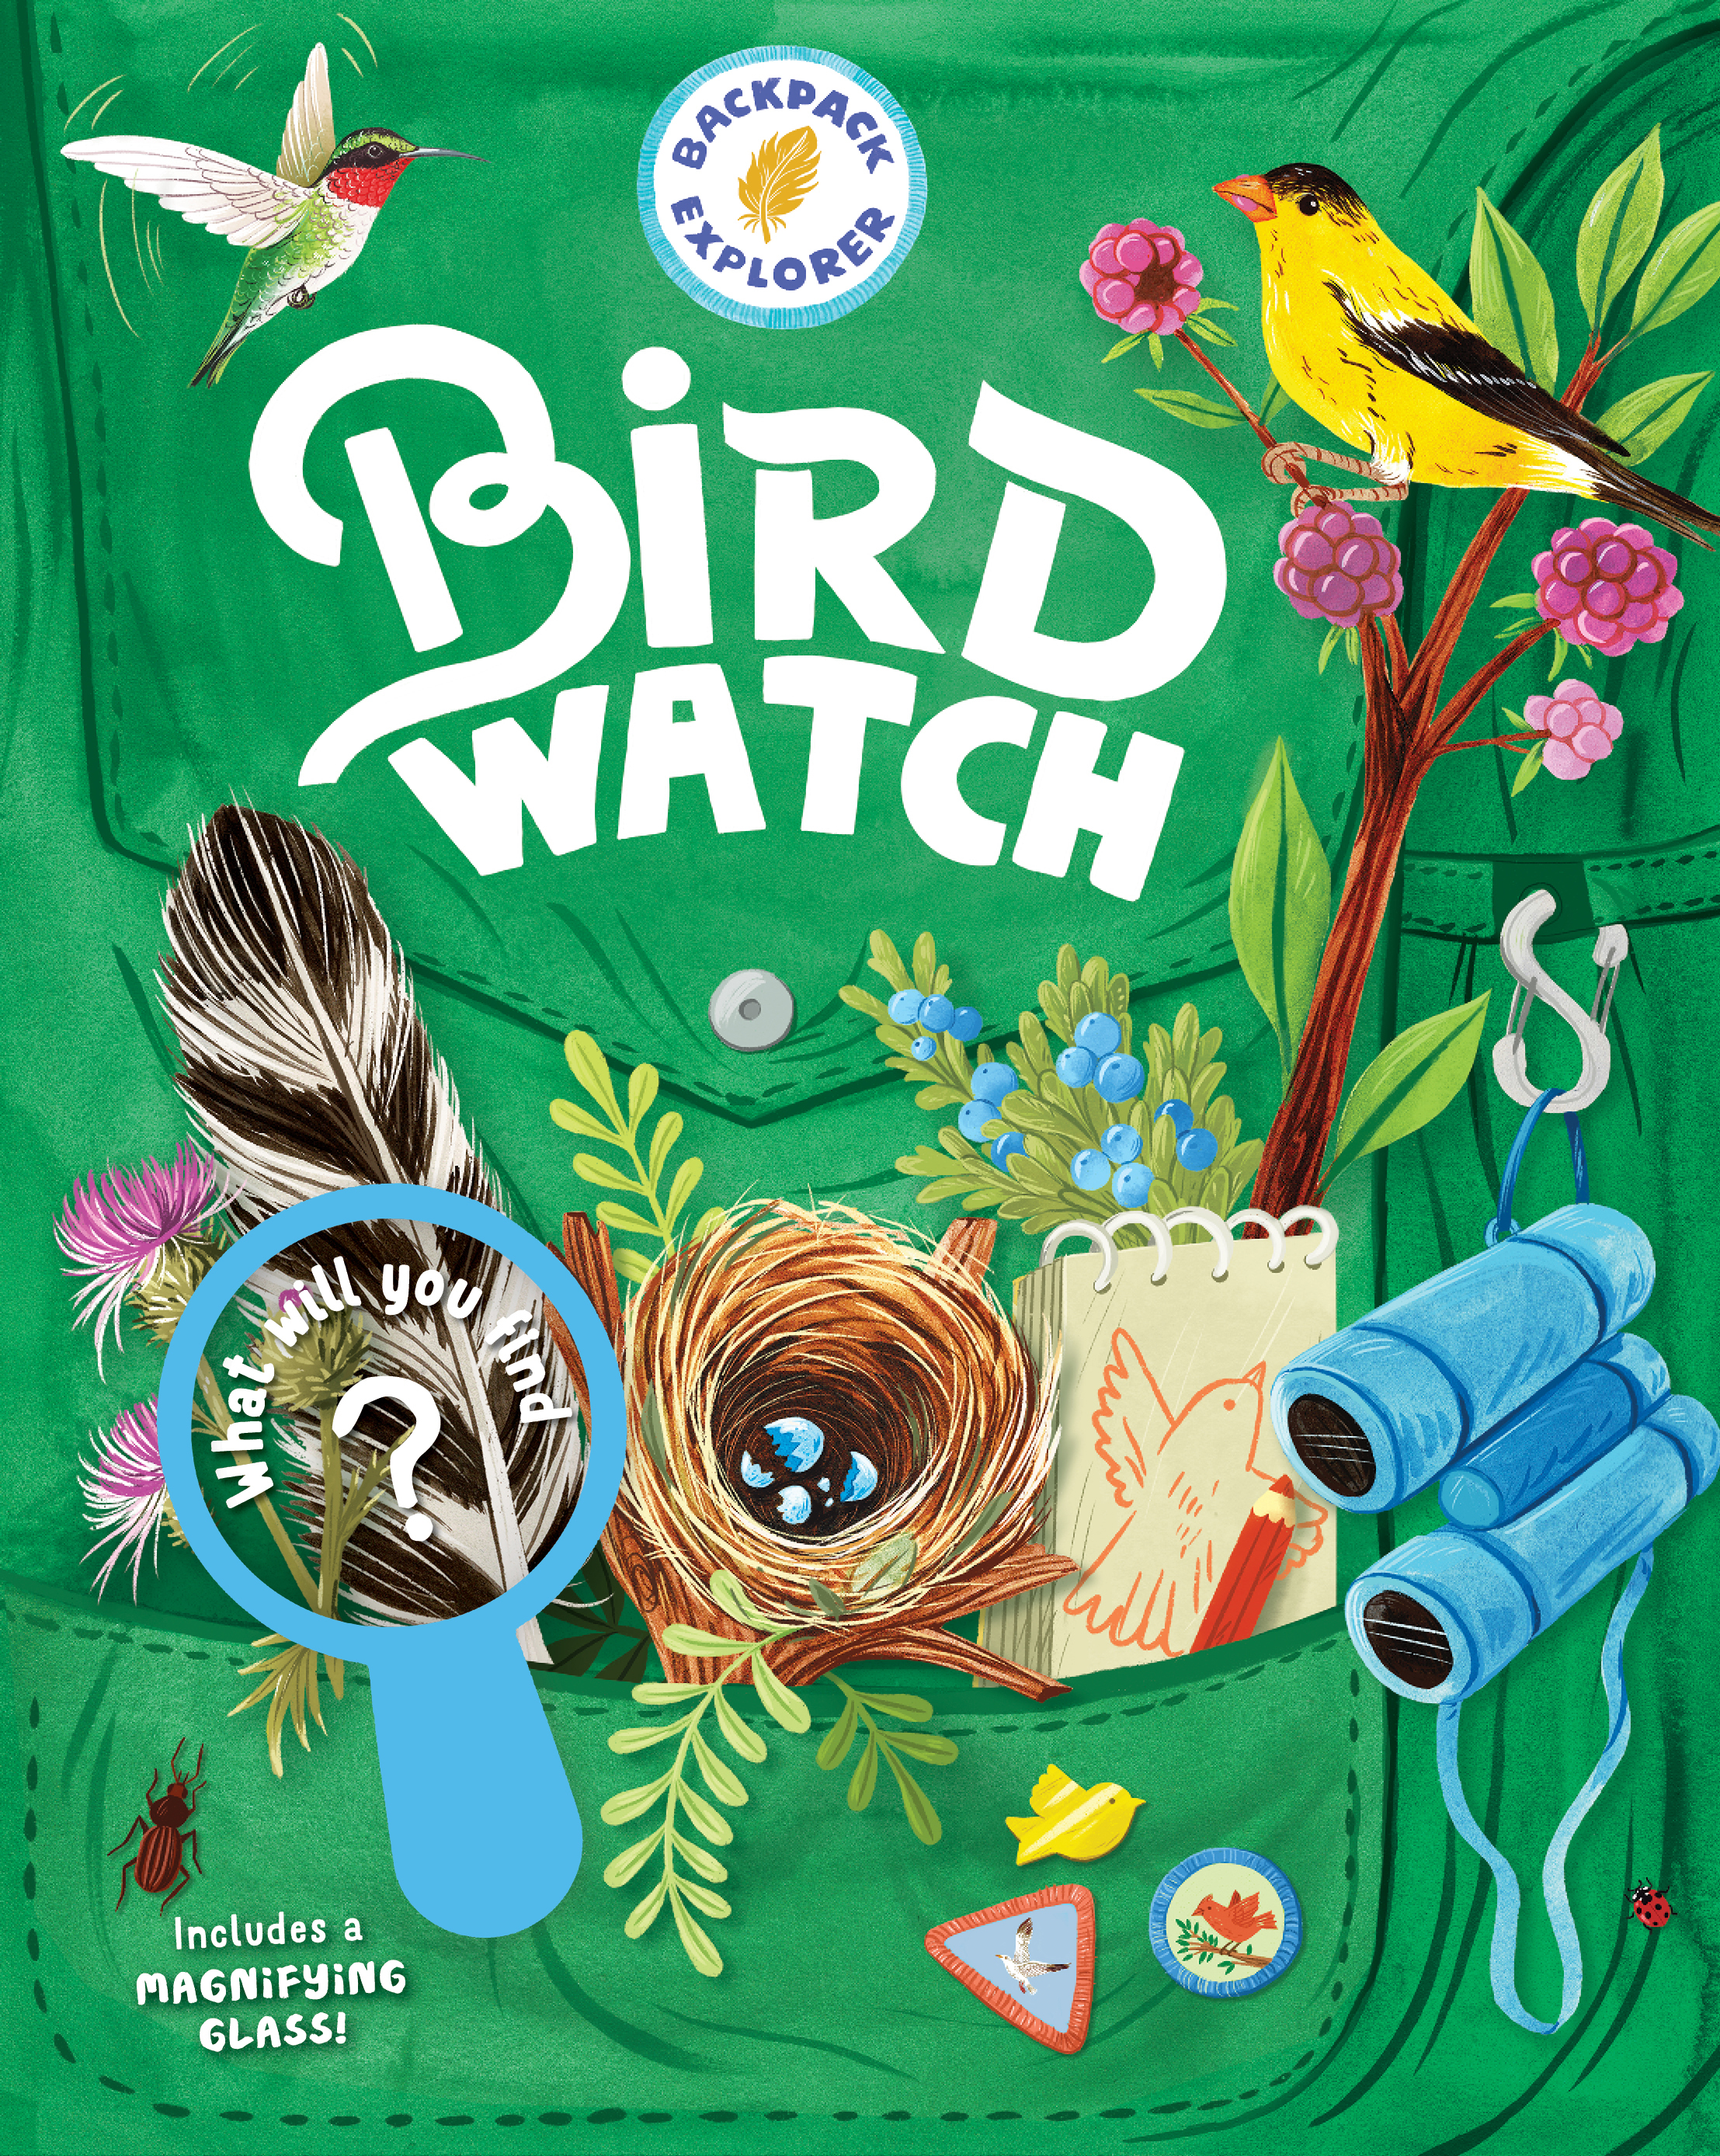 Backpack Explorer: Bird Watch What Will You Find? - Editors of Storey Publishing